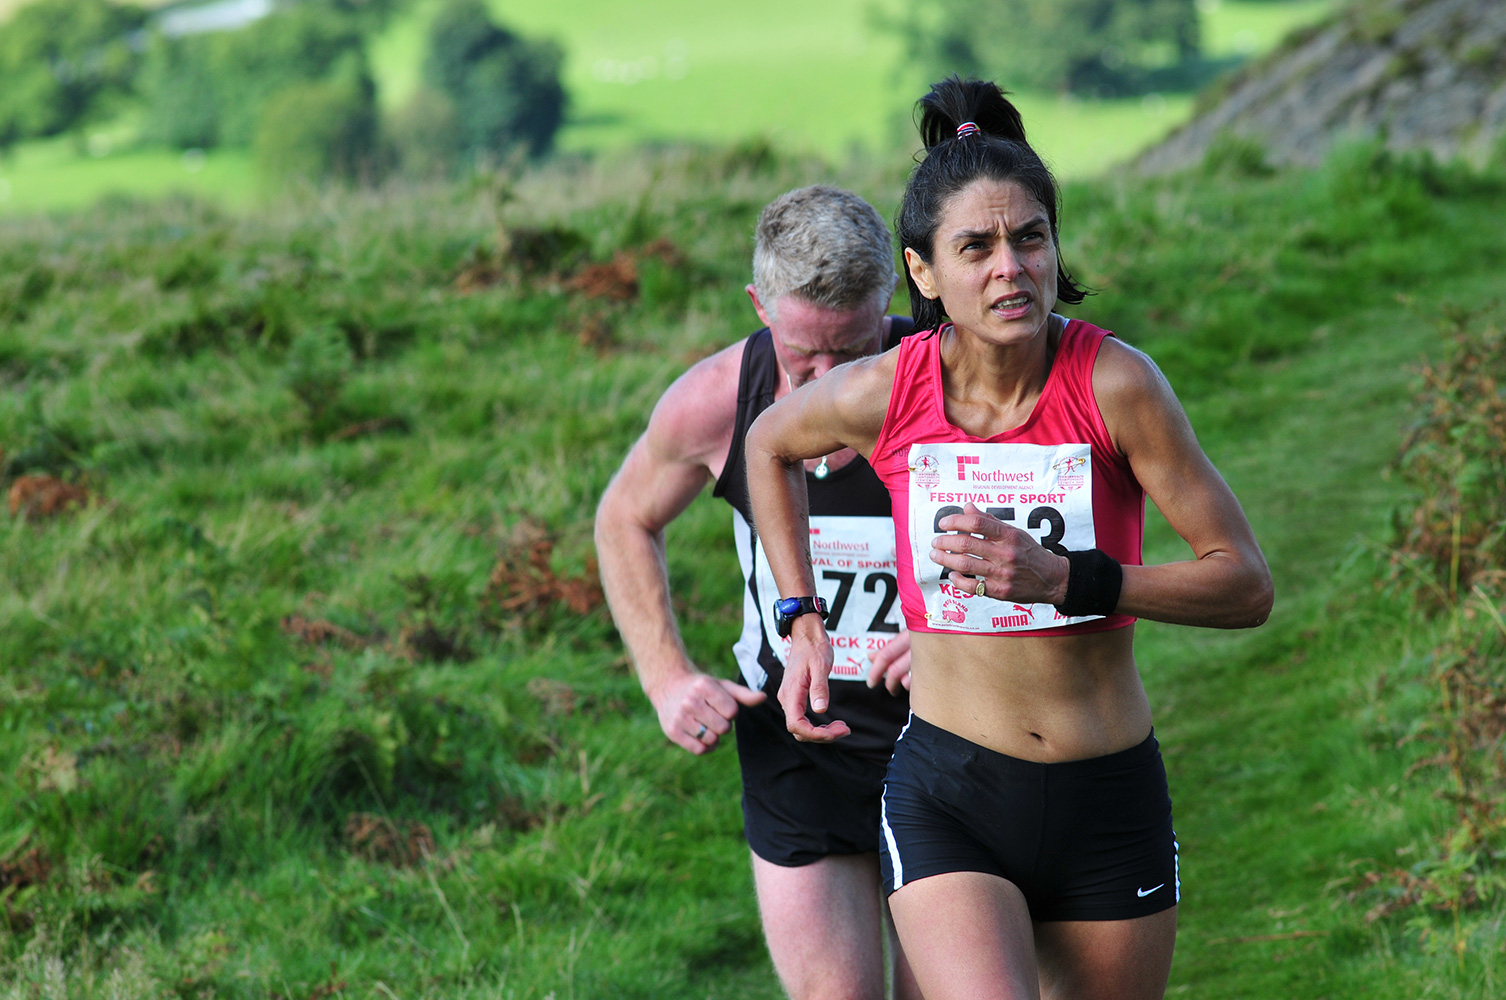 I shot this event for the I.A.U. in Kesick in September 2009. Competitors in the Open Fell Race